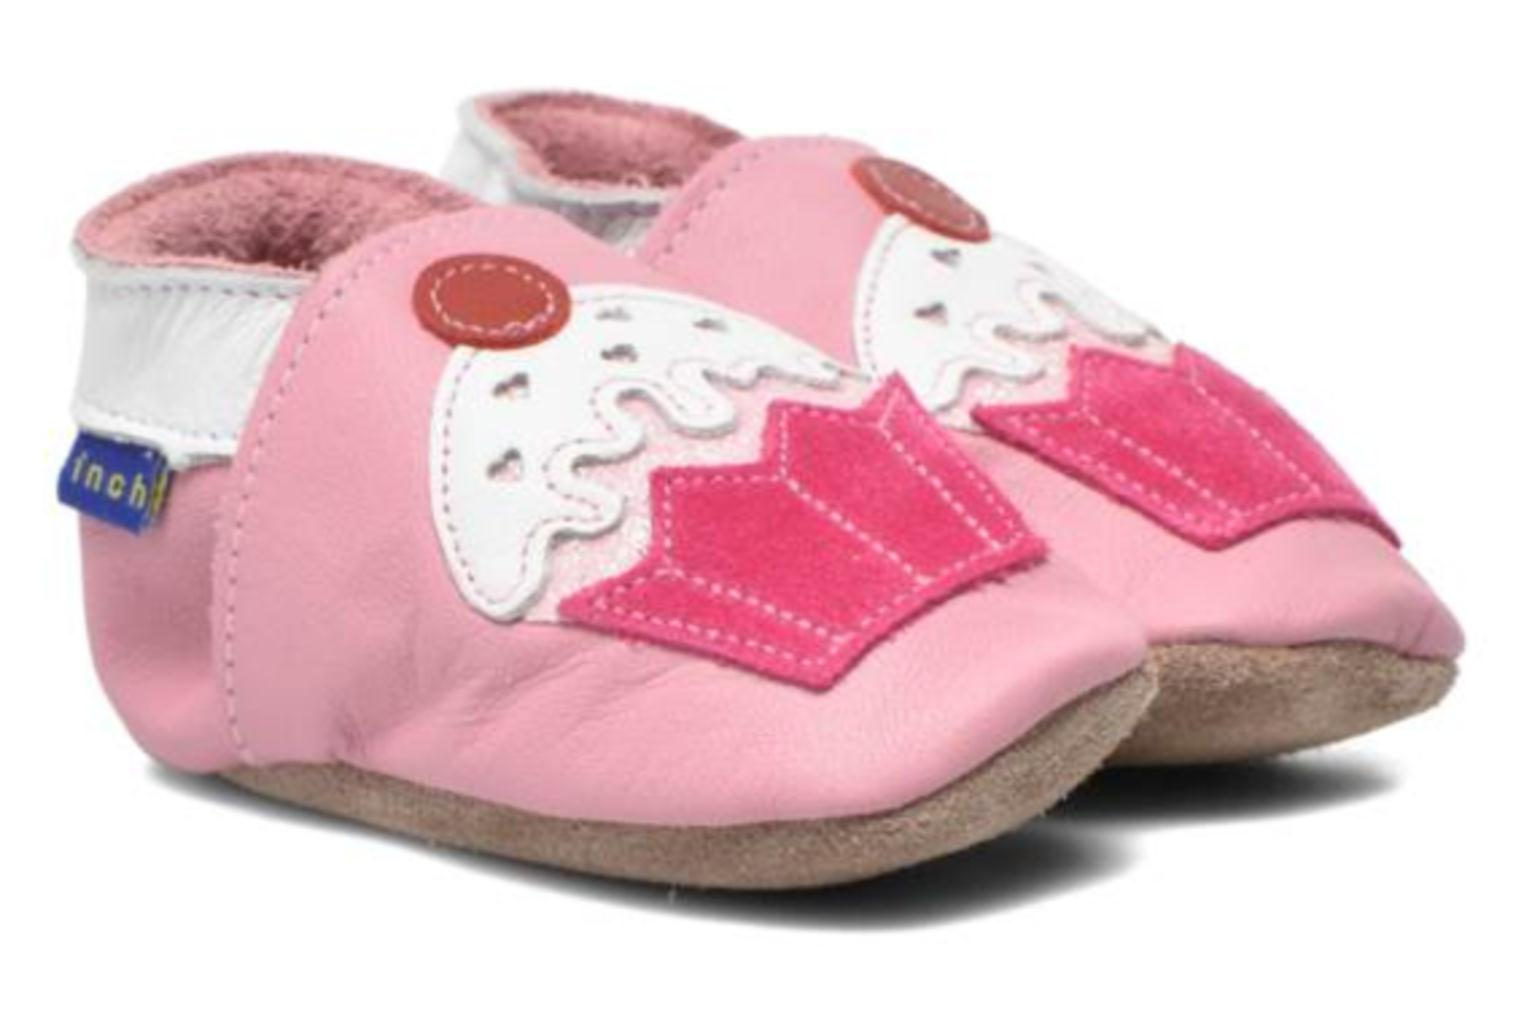 Chaussons Inch Blue Little Cupcake Rose vue 3/4